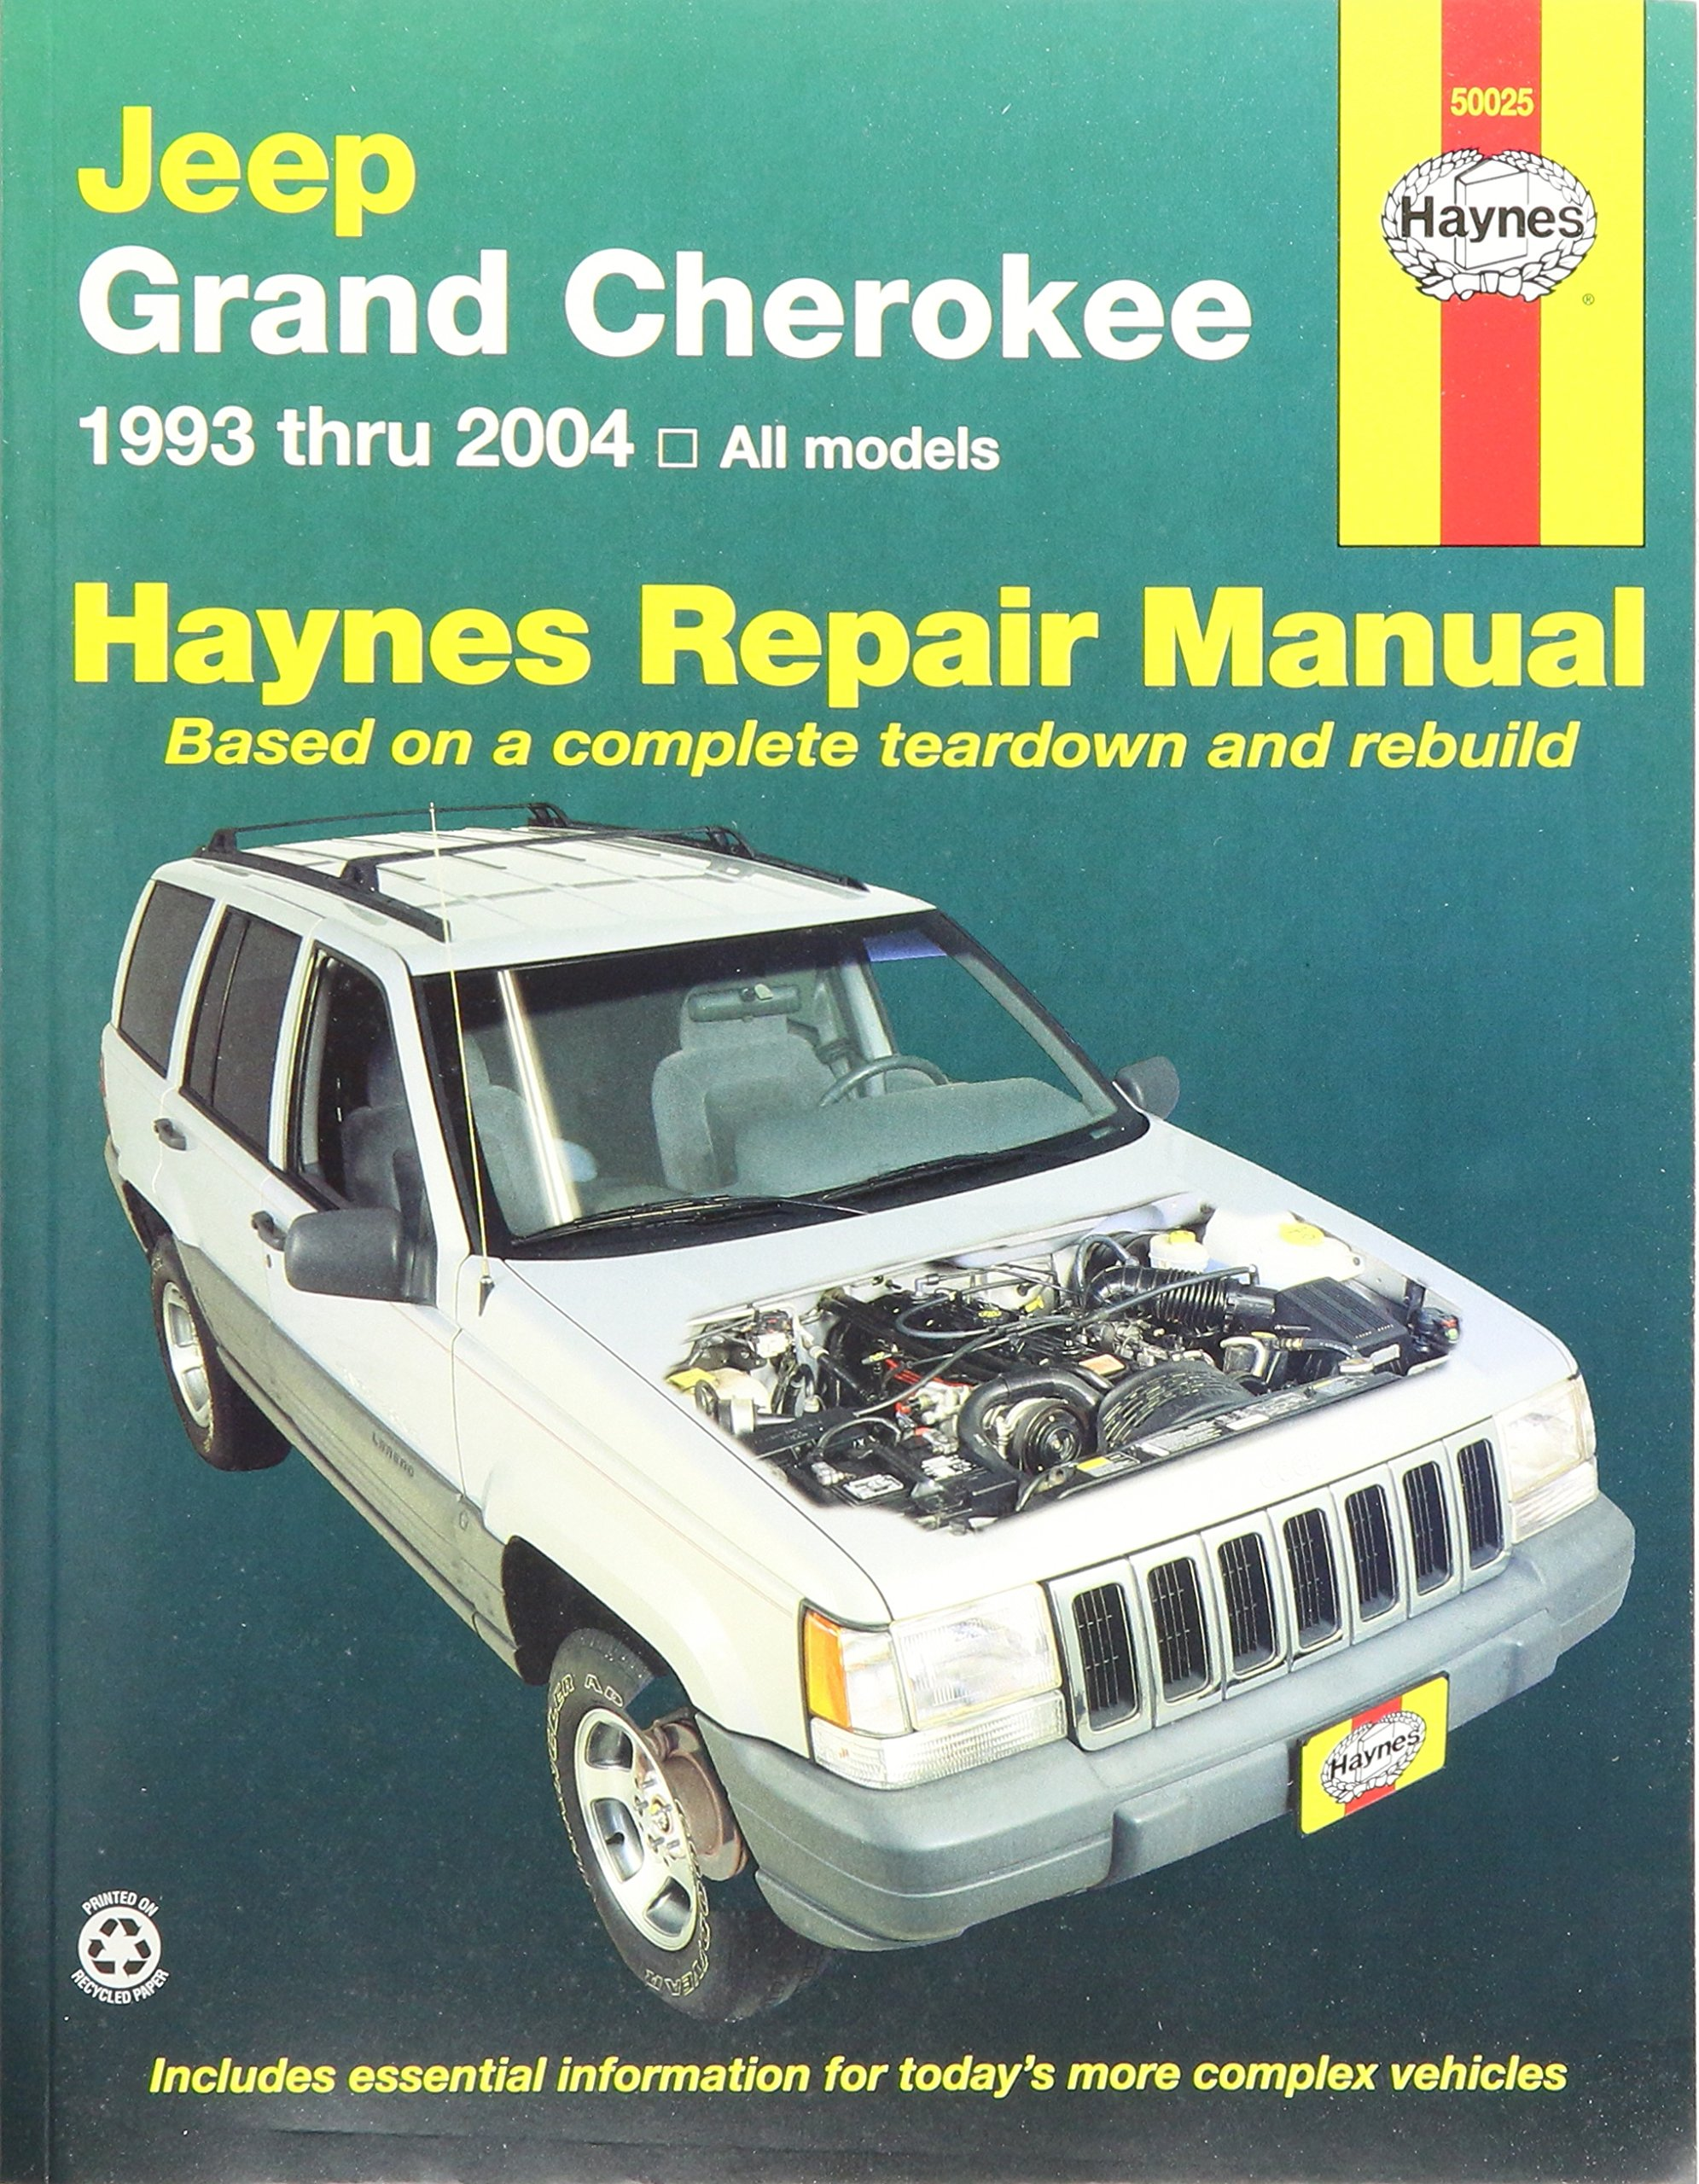 1991 Jeep Grand Cherokee Repair Manual Best User Guides And Manuals 1999 Amazon Com Haynes Publications Inc 50025 Rh Sport 2001 Xj